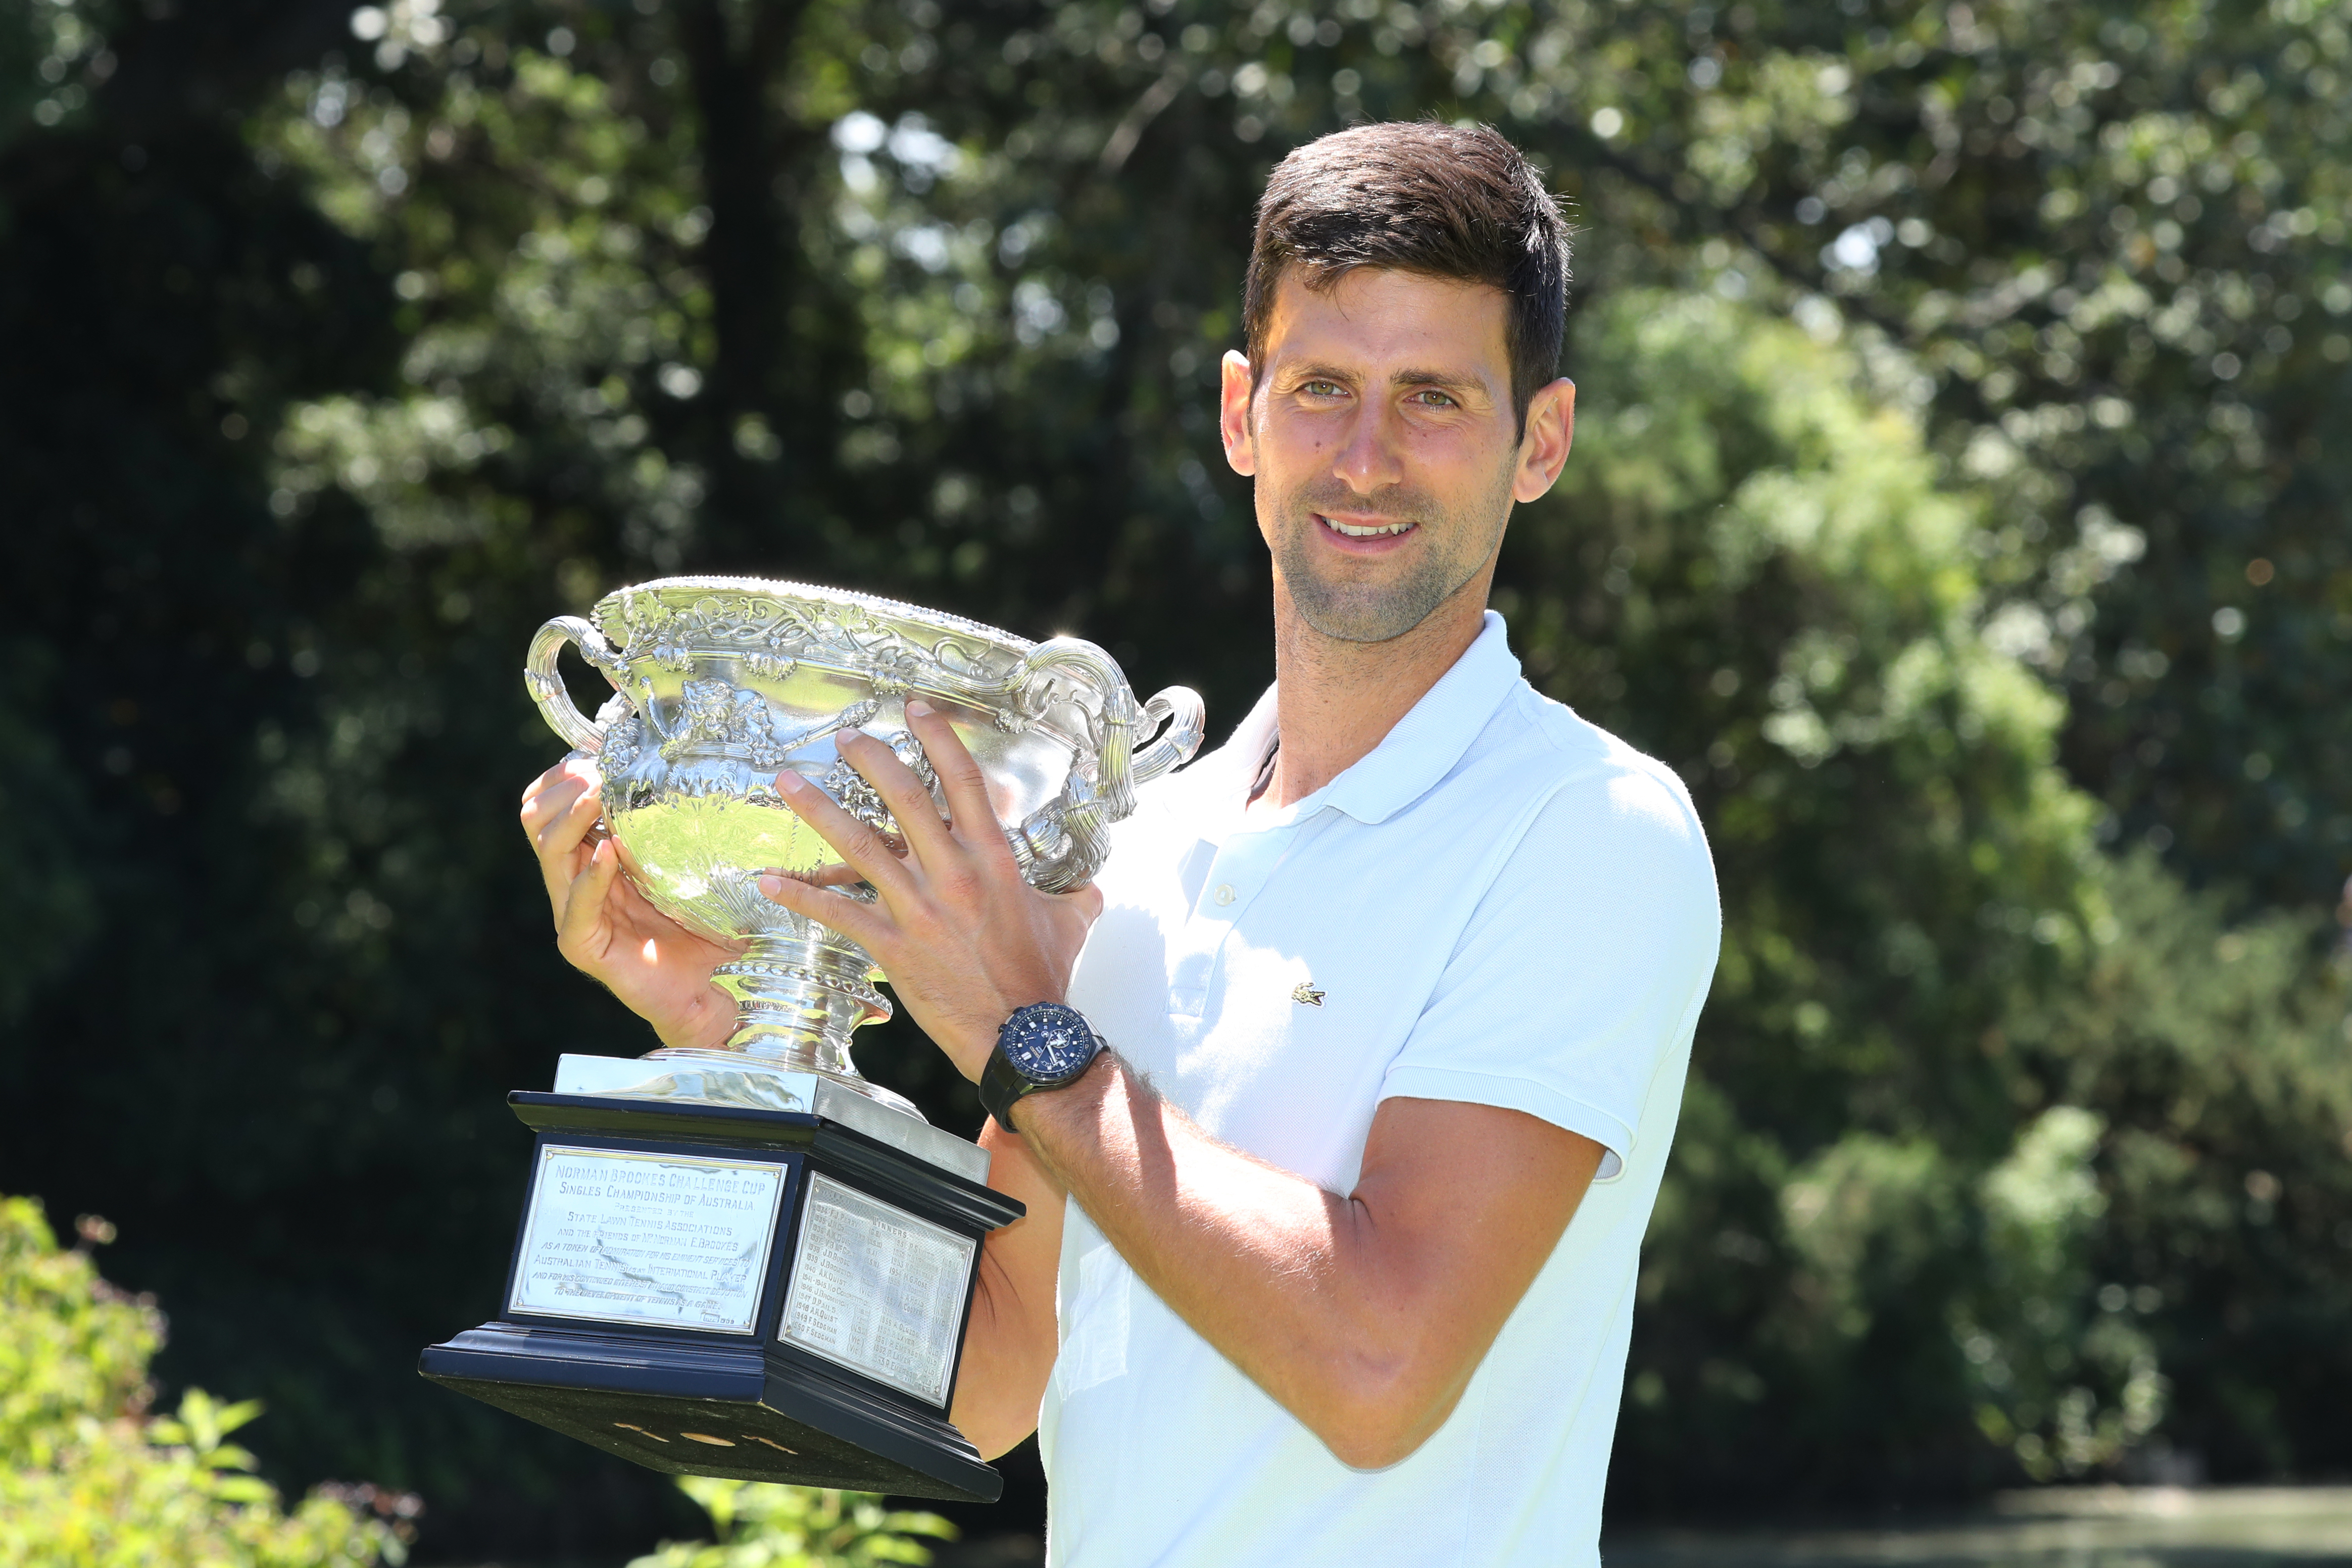 Wimbledon Winner Novak Djokovic Credits His Improved Performance To A Plant Based Diet One Green Planet